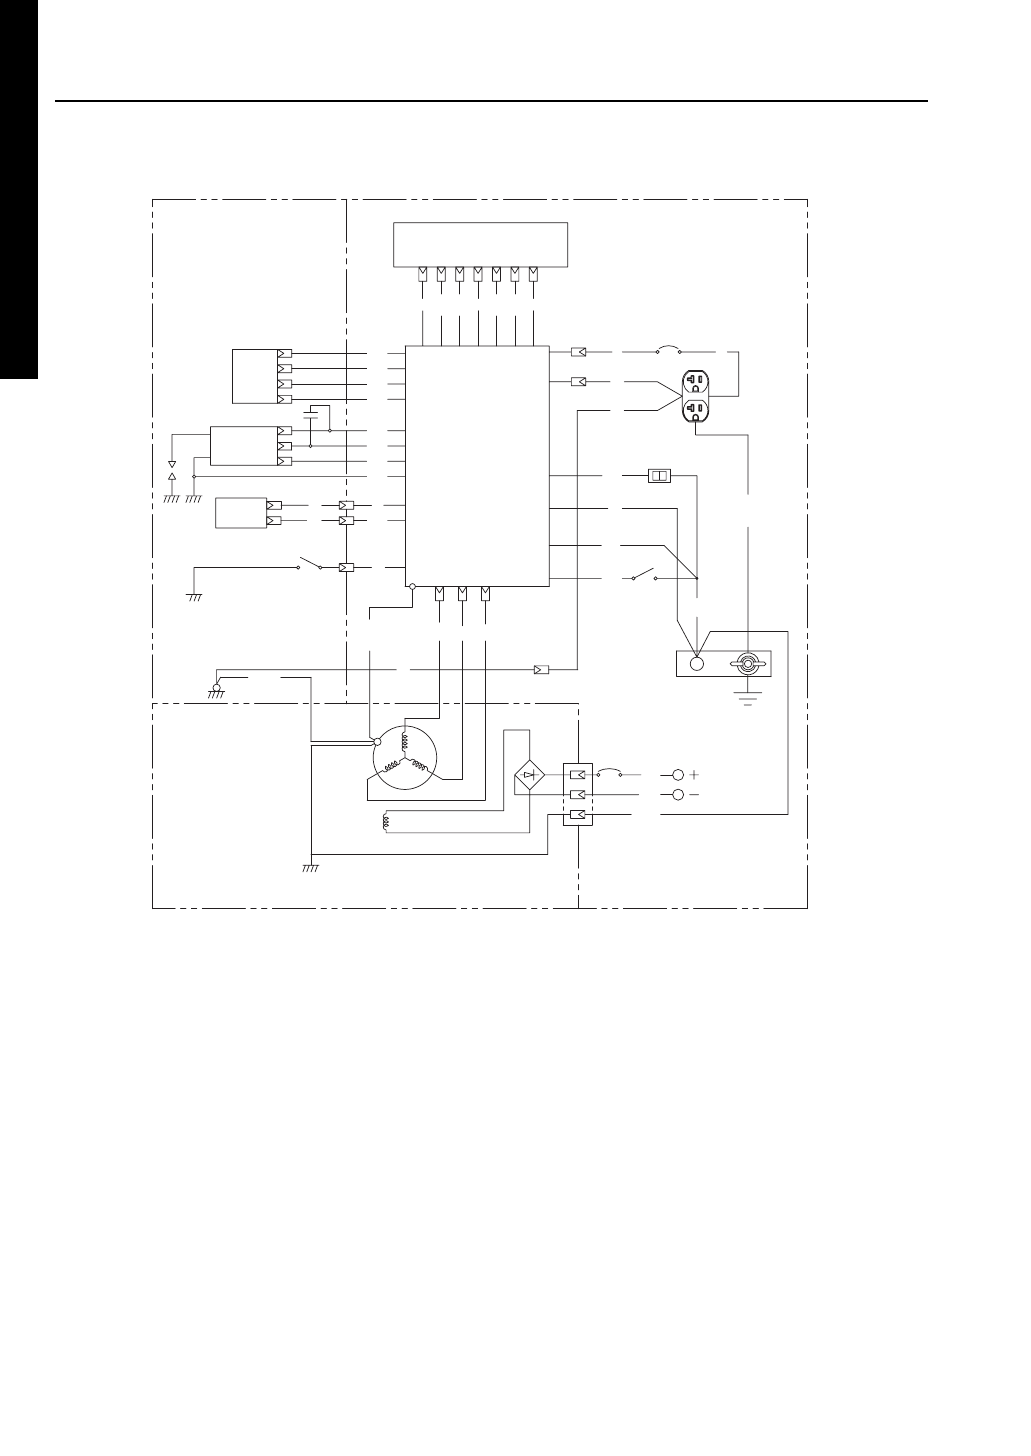 Makita G1700i 15.WIRING DIAGRAM